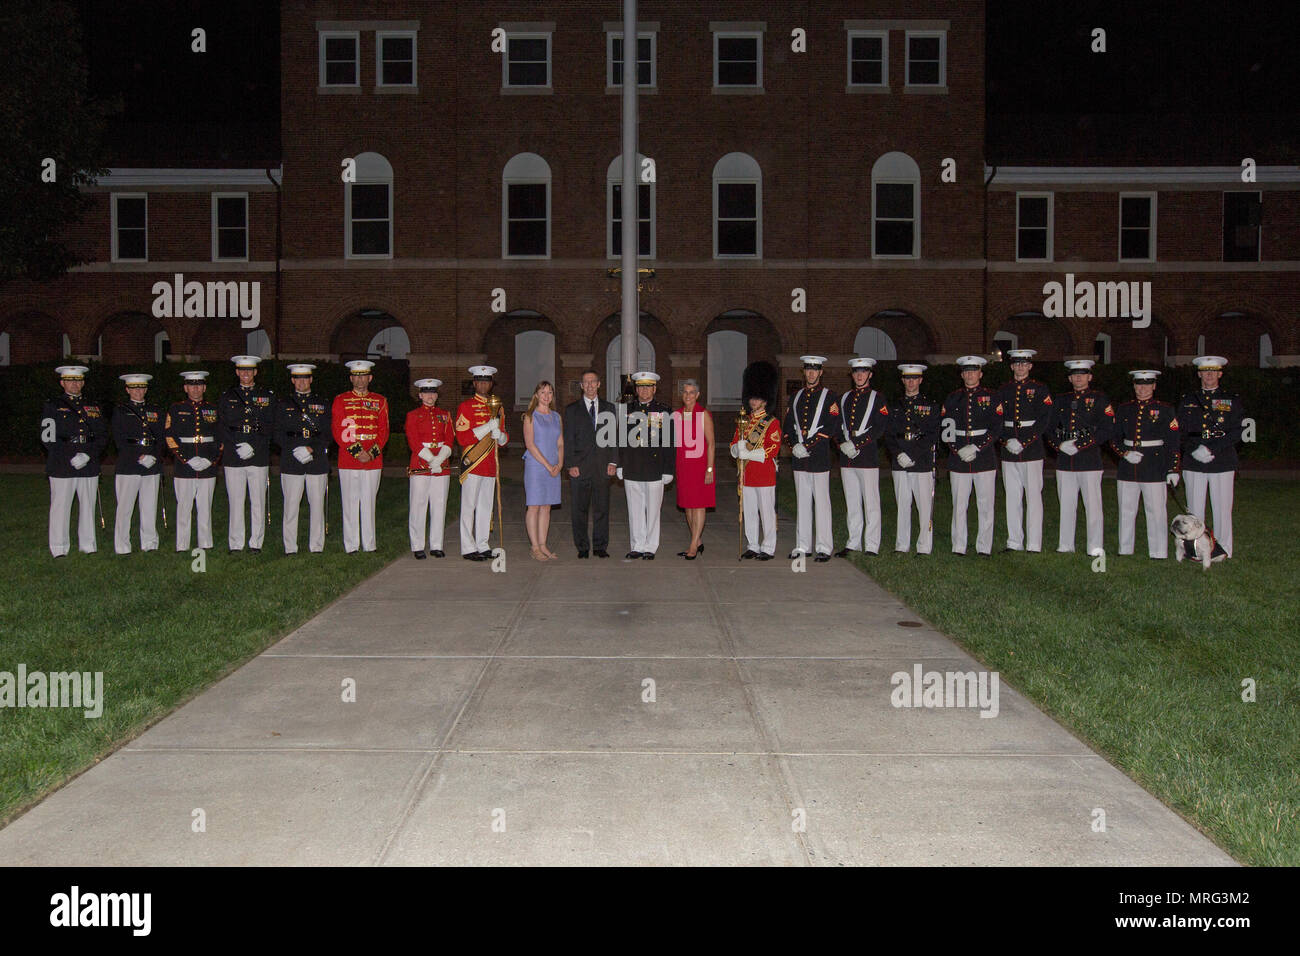 Secretary of the Navy the Honorable Sean J. Stackley, center left, and the Commandant of the Marine Corps Gen. Robert B. Neller, center right, pose for a photo with U.S. Marines from Marine Barracks Washington following an evening parade at Marine Barracks Washington, Washington, D.C., June 9, 2017. Evening parades are held as a means of honoring senior officials, distinguished citizens and supporters of the Marine Corps. (U.S. Marine Corps photo by Cpl. Christian Varney) Stock Photo